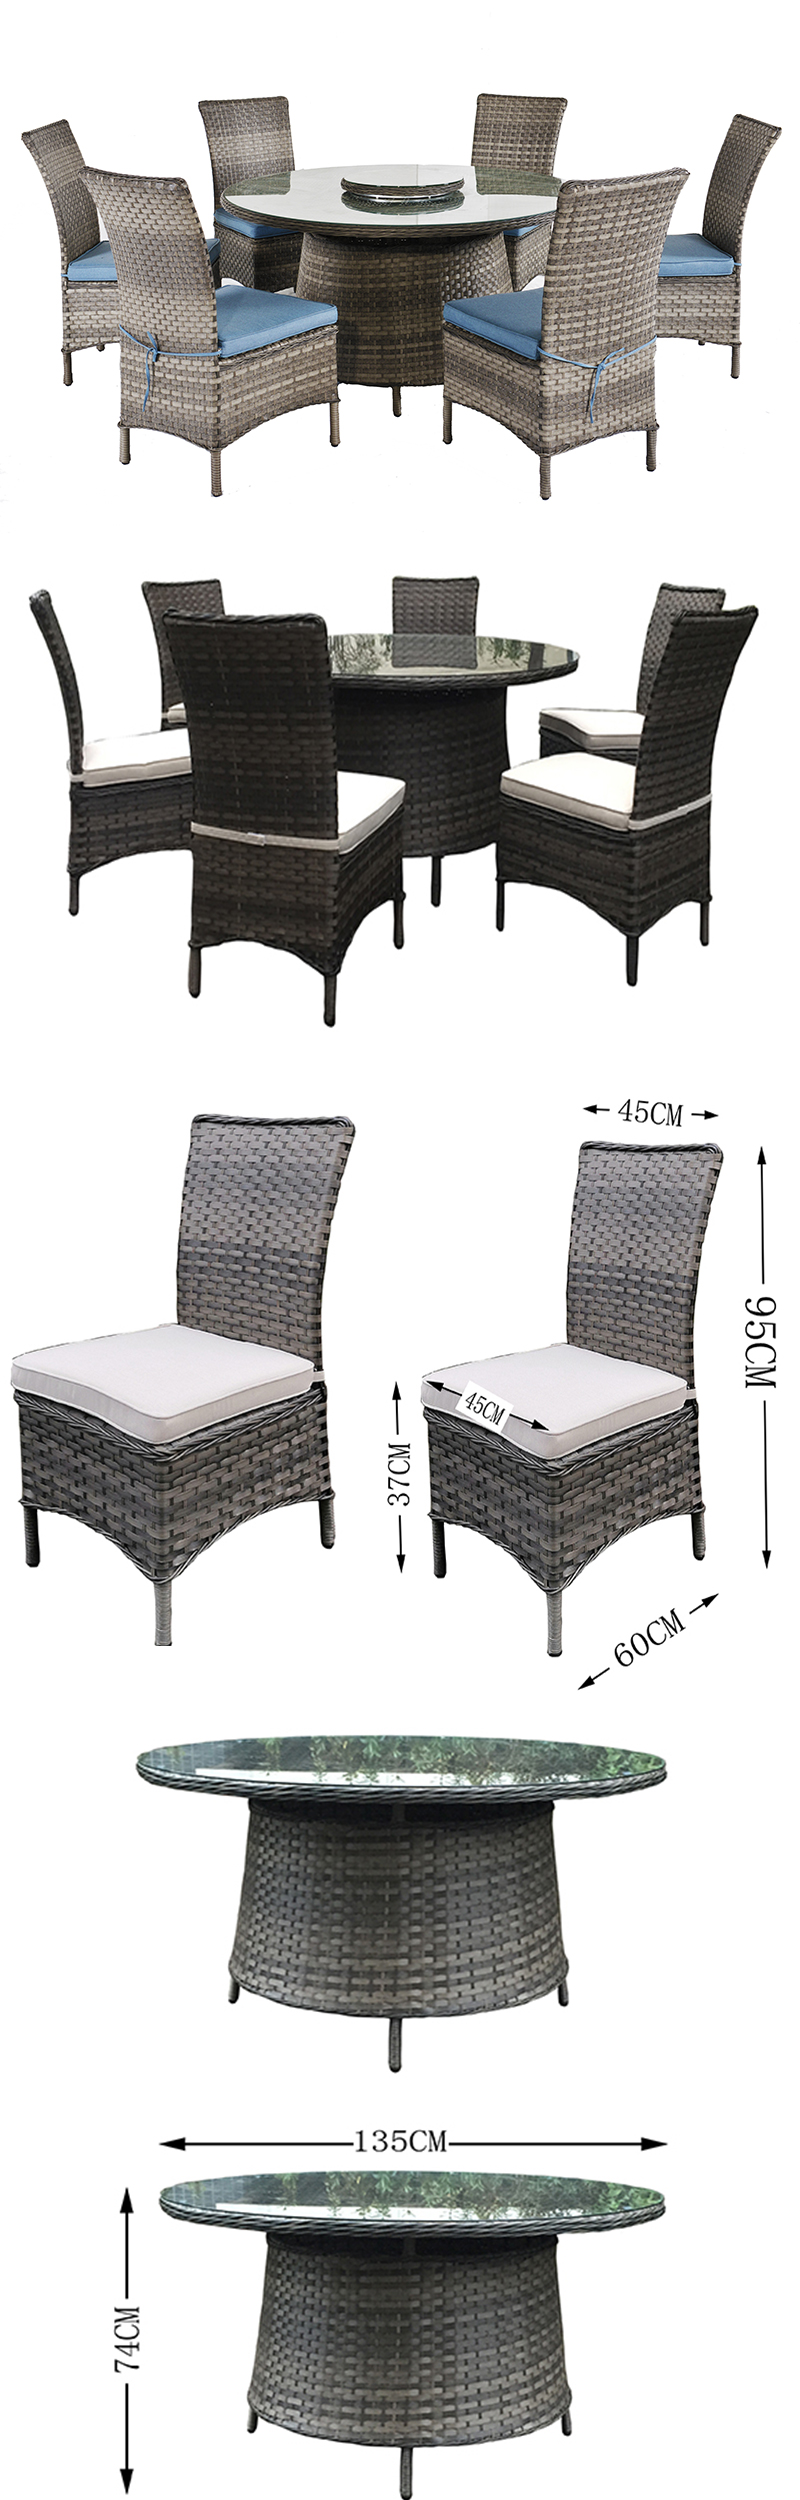 Rattan Patio Furniture 7 PCS Outdoor Dining Set